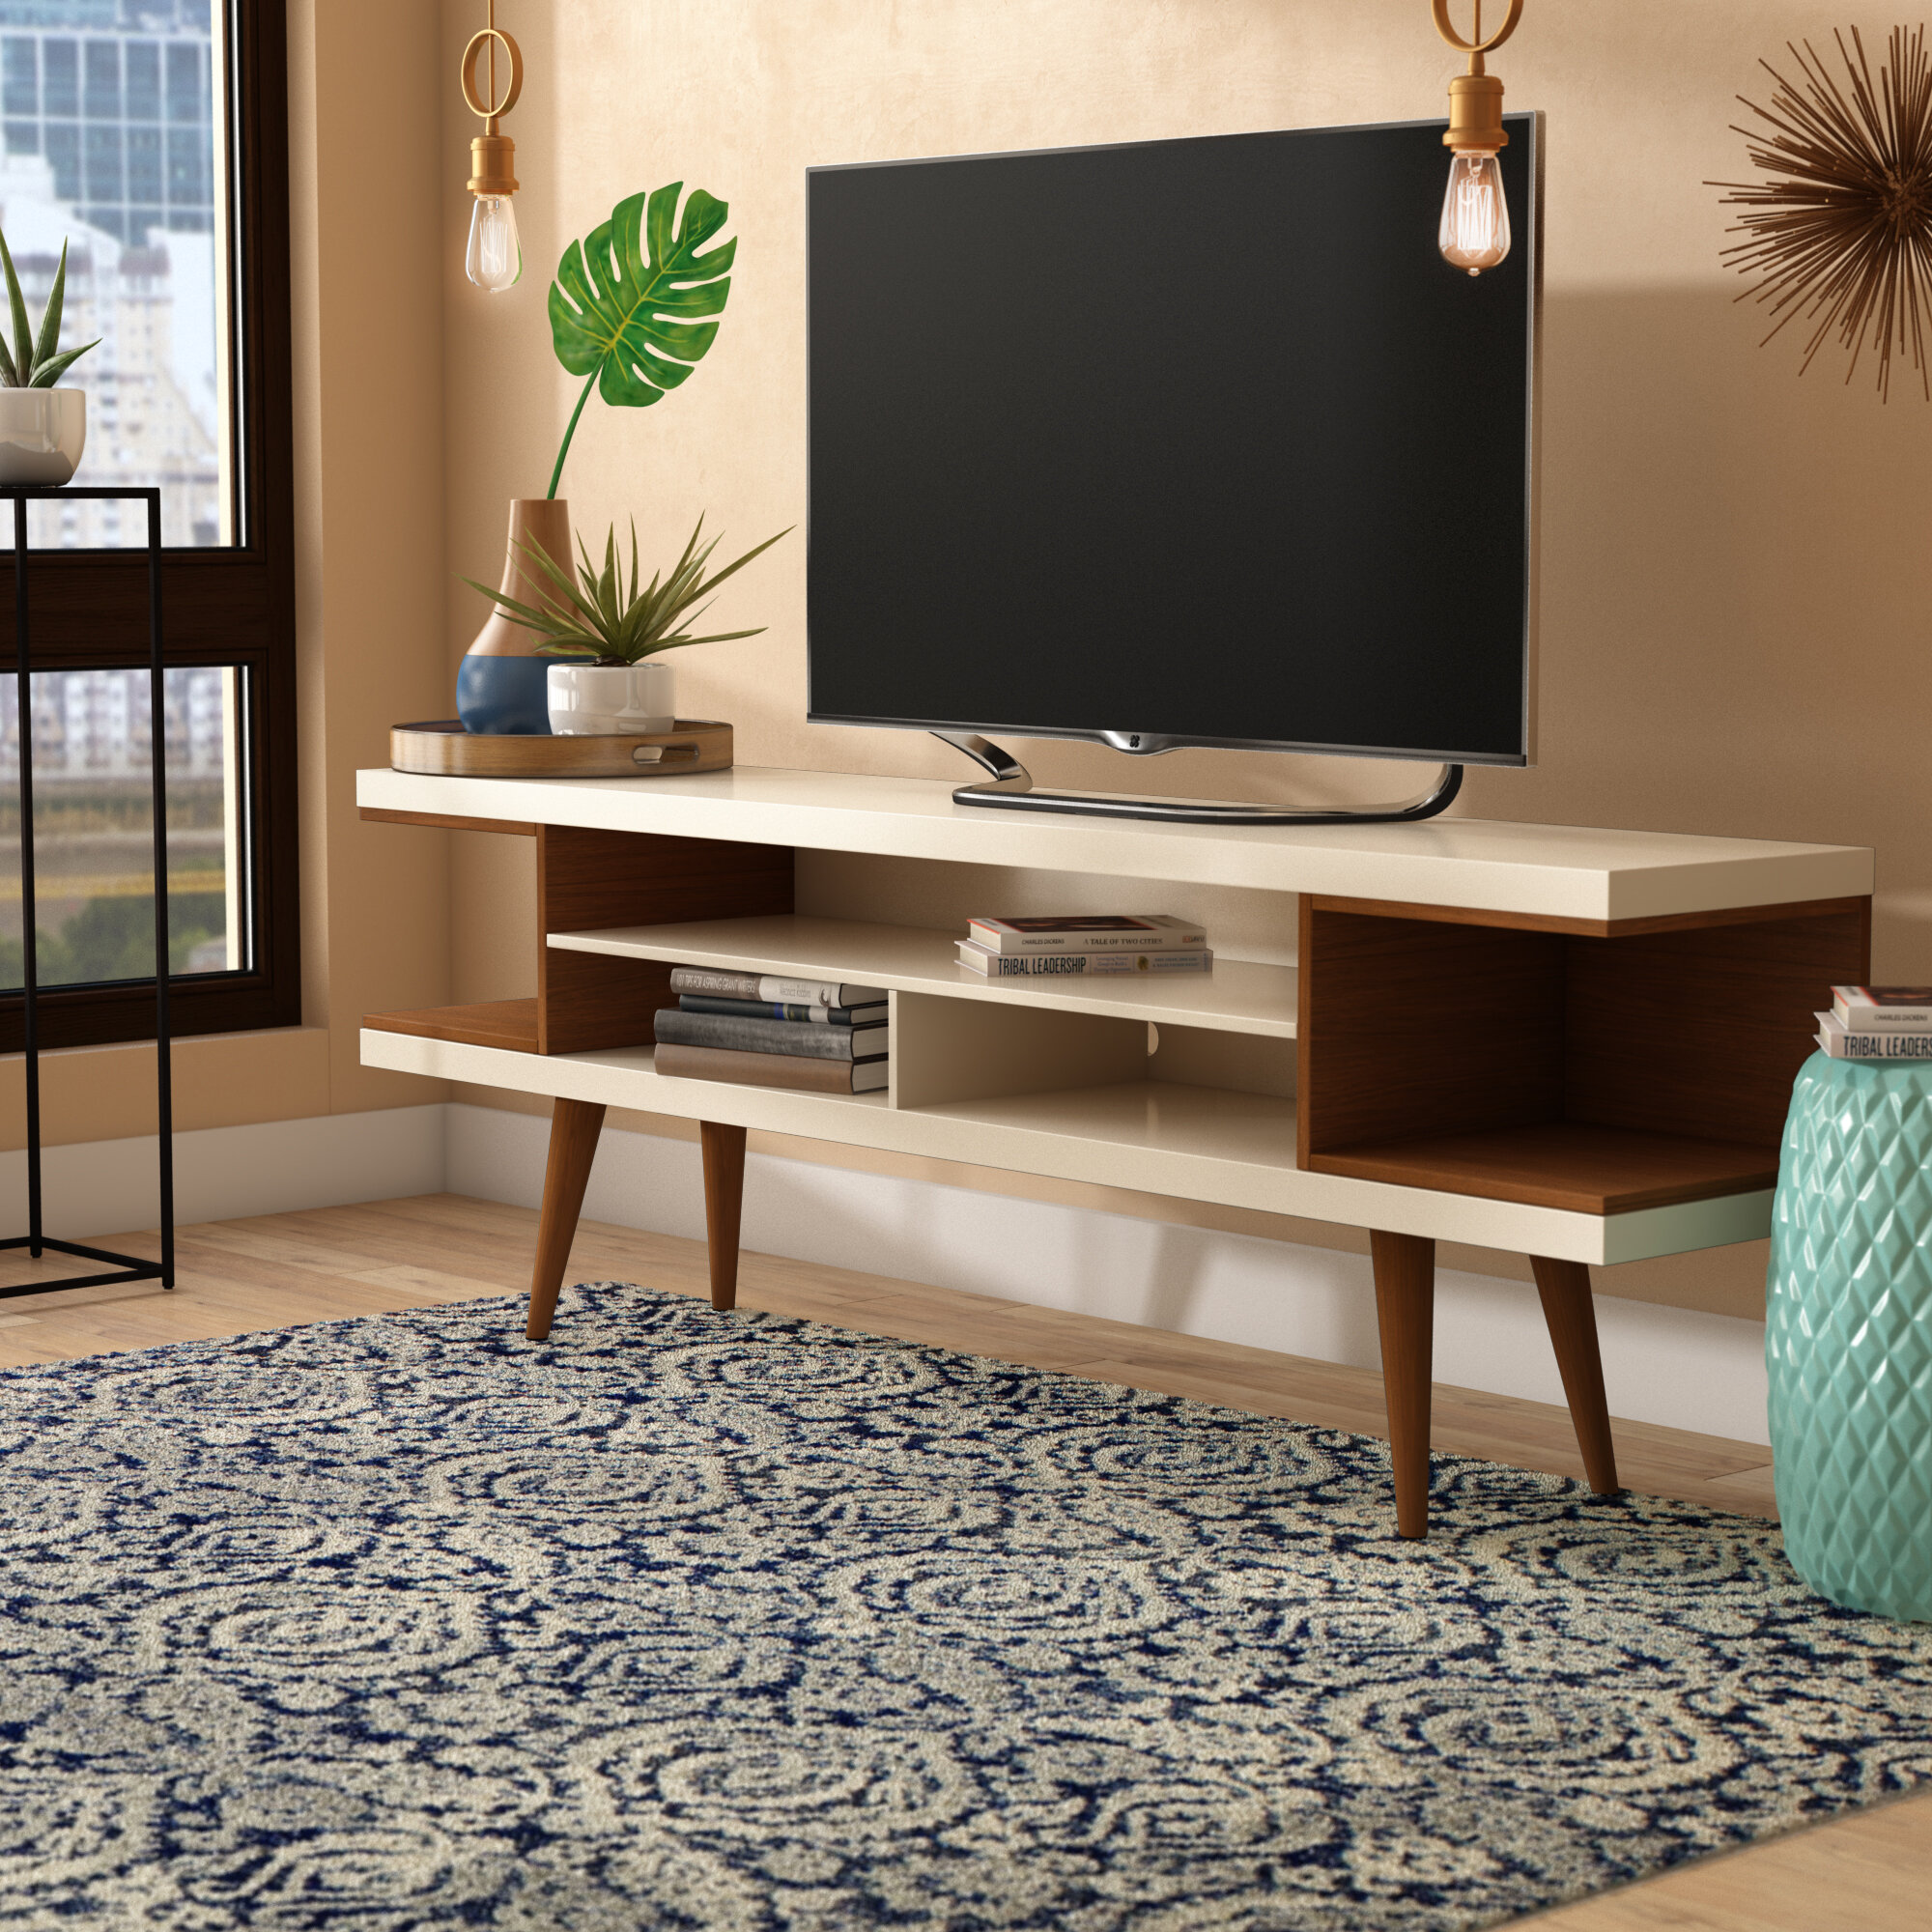 George Oliver Lemington Tv Stand For Tvs Up To 71 Reviews Wayfair